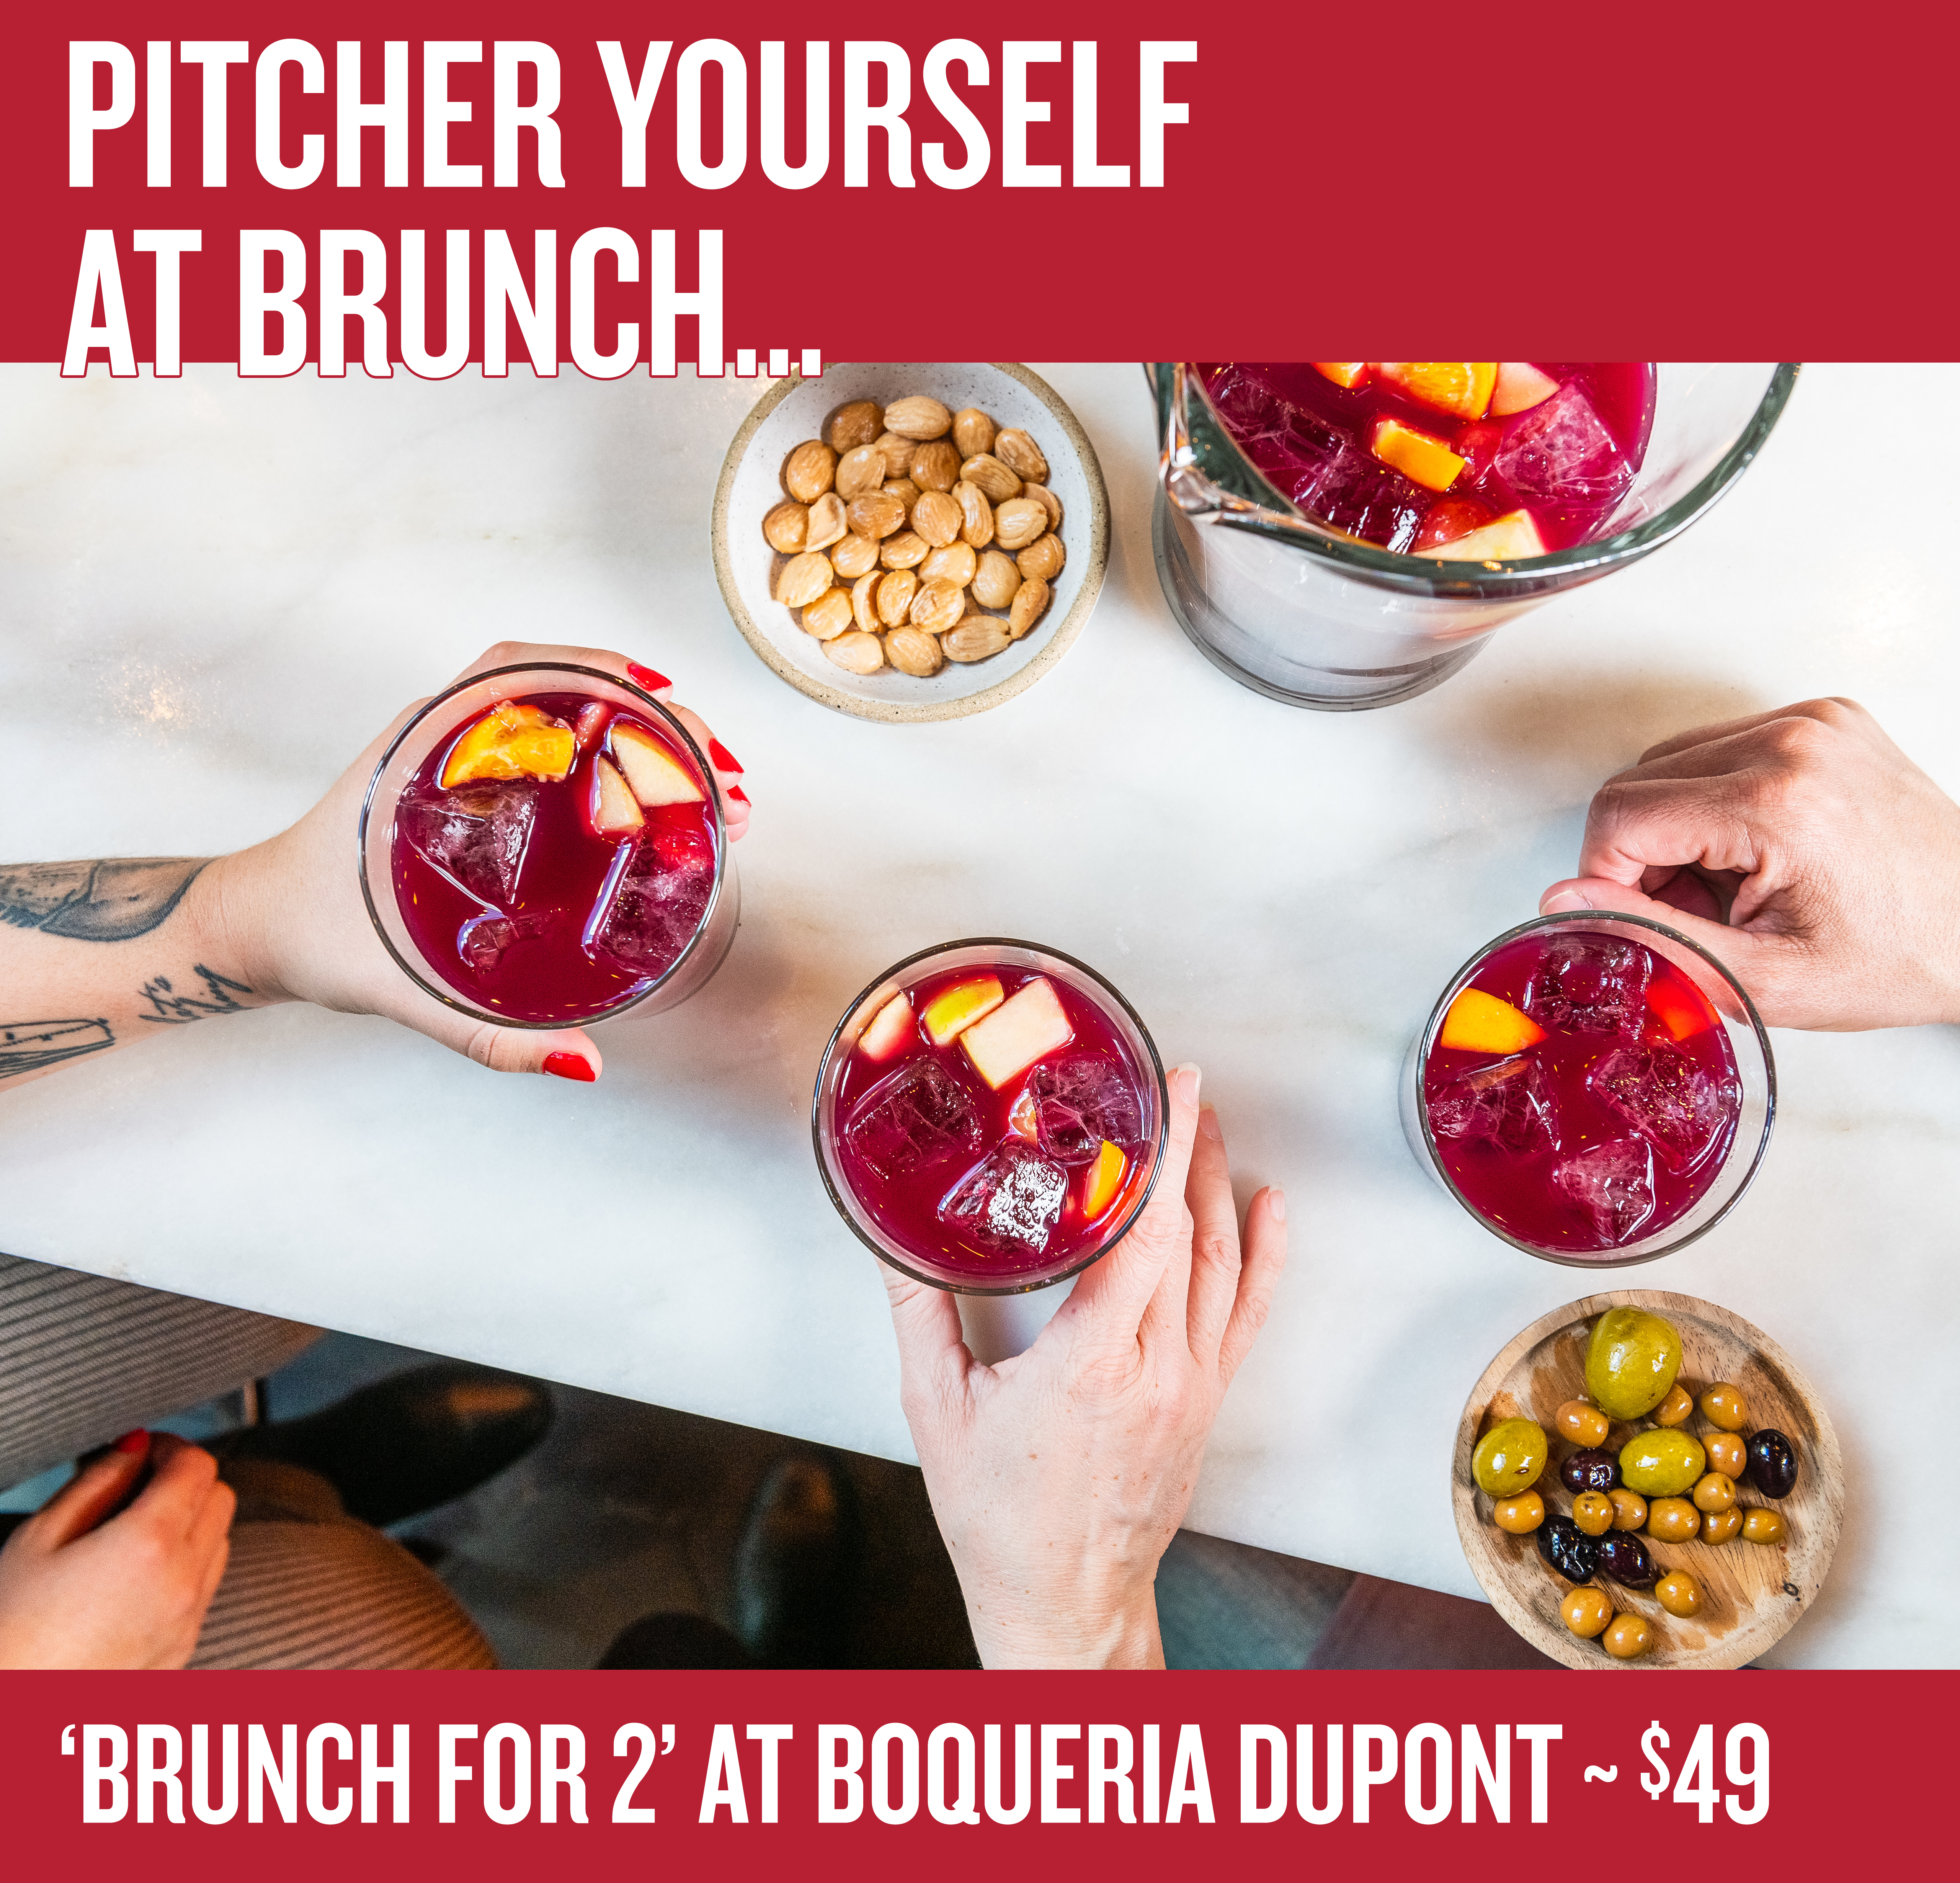 Brunch for 2 - $49